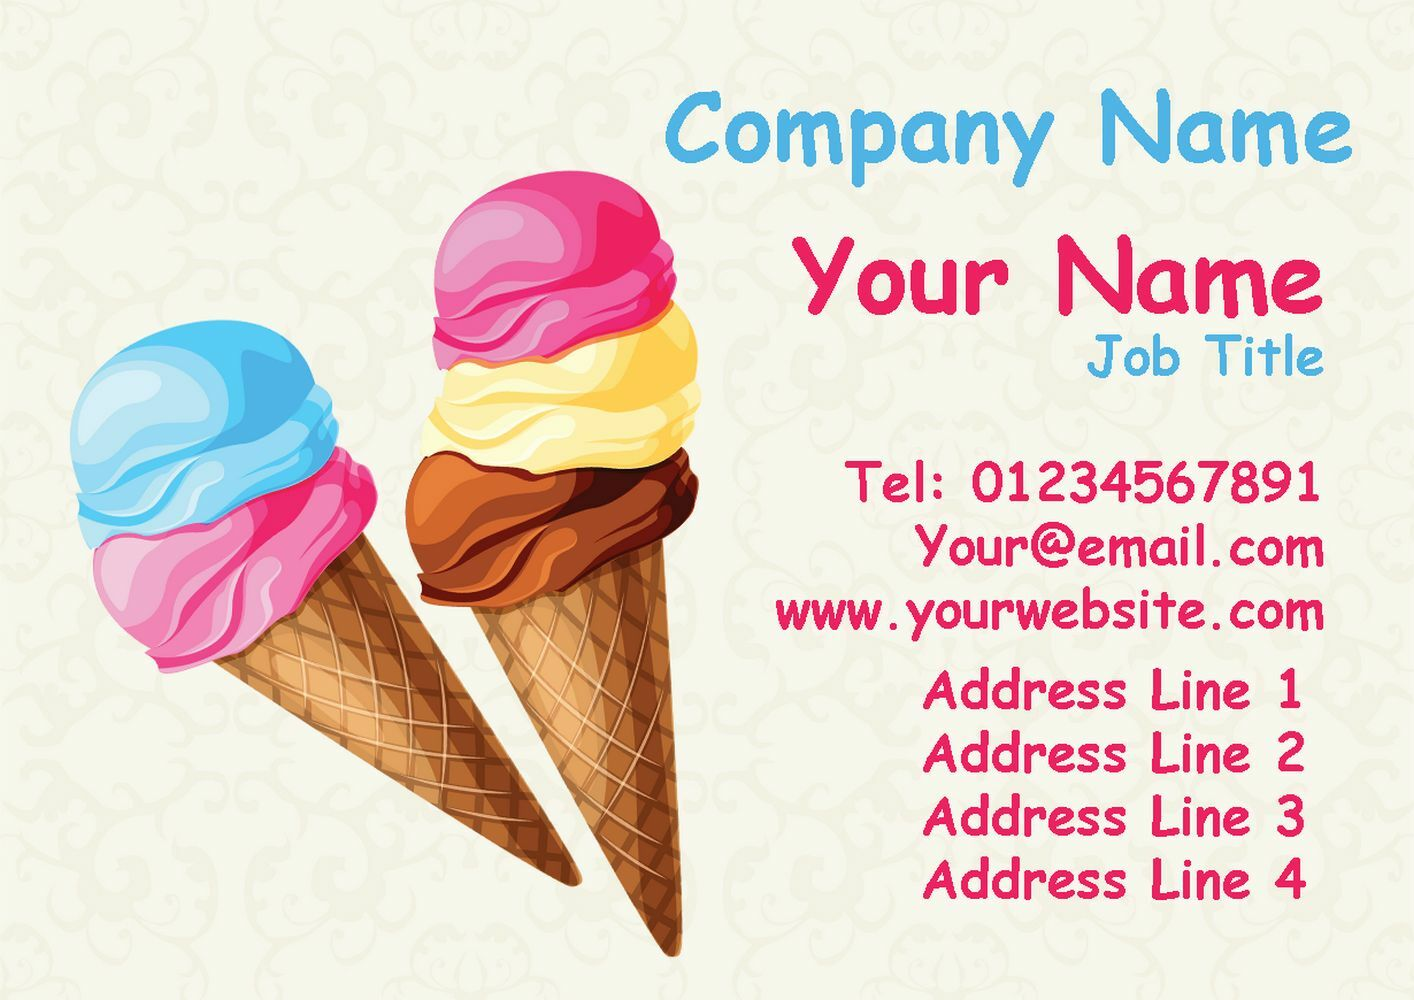 Bubble-Gum Ice Cream Personalised Business Cards